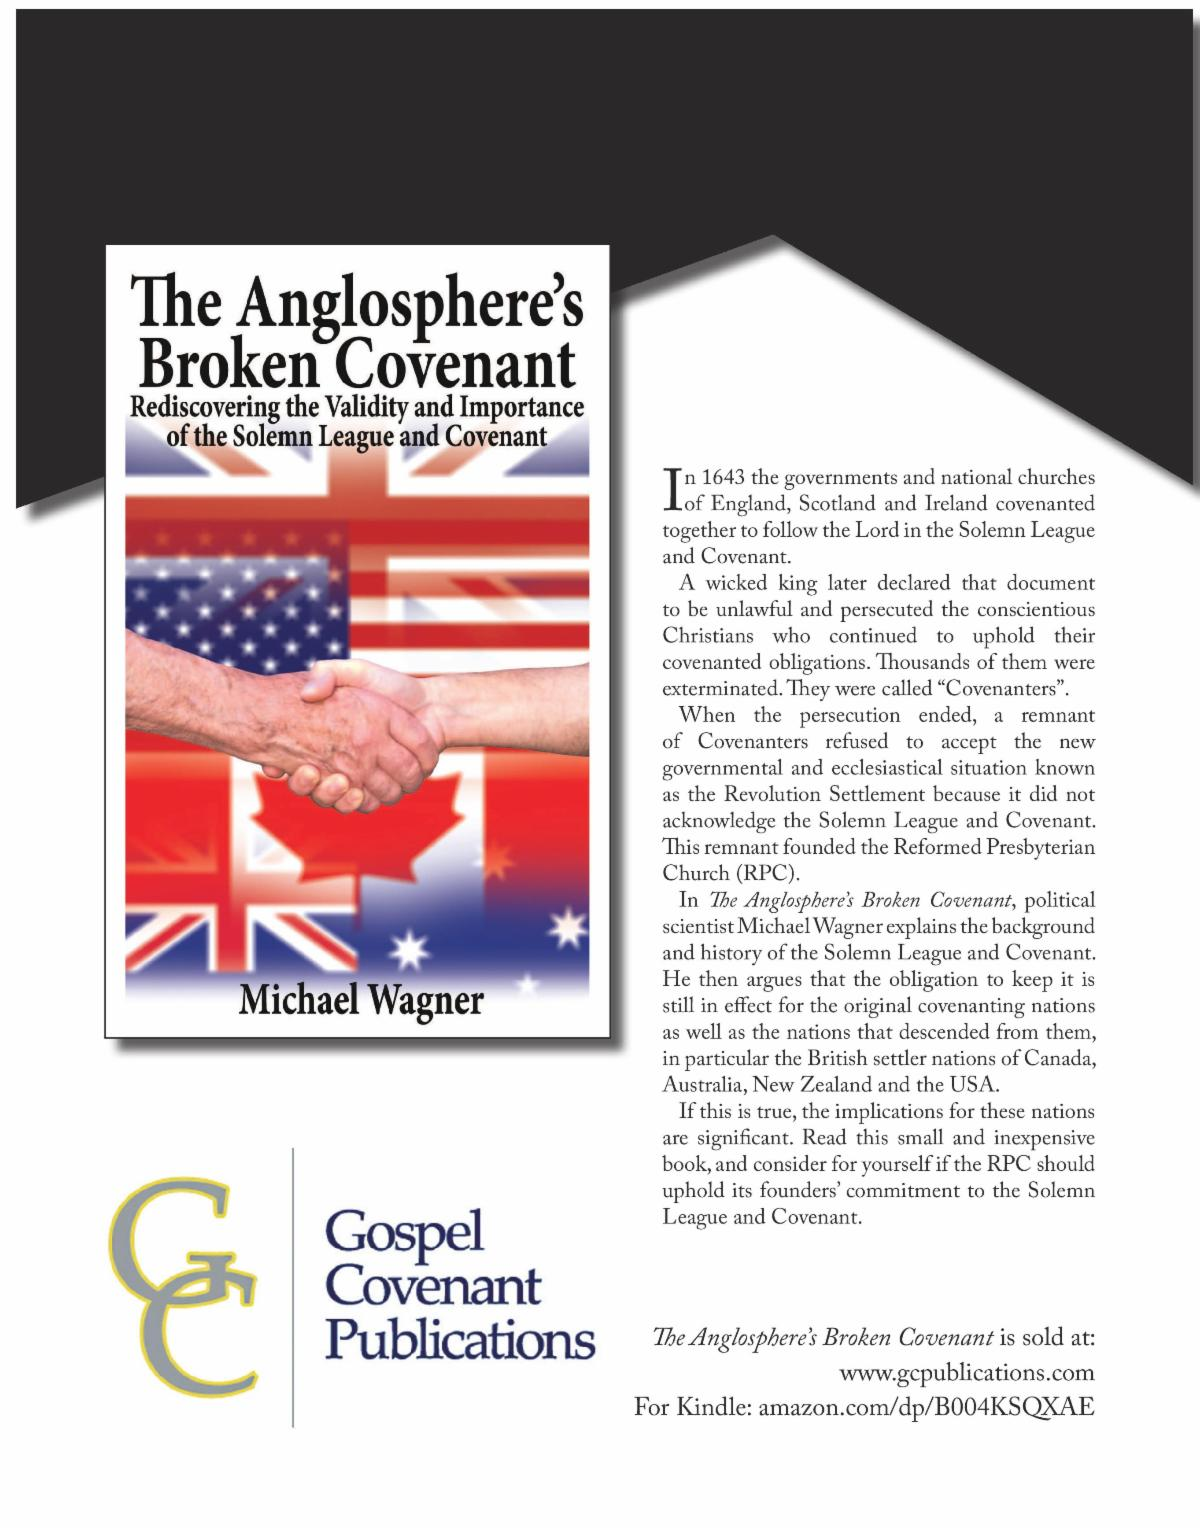 AnglosphereBrokenCovenantCover&Text